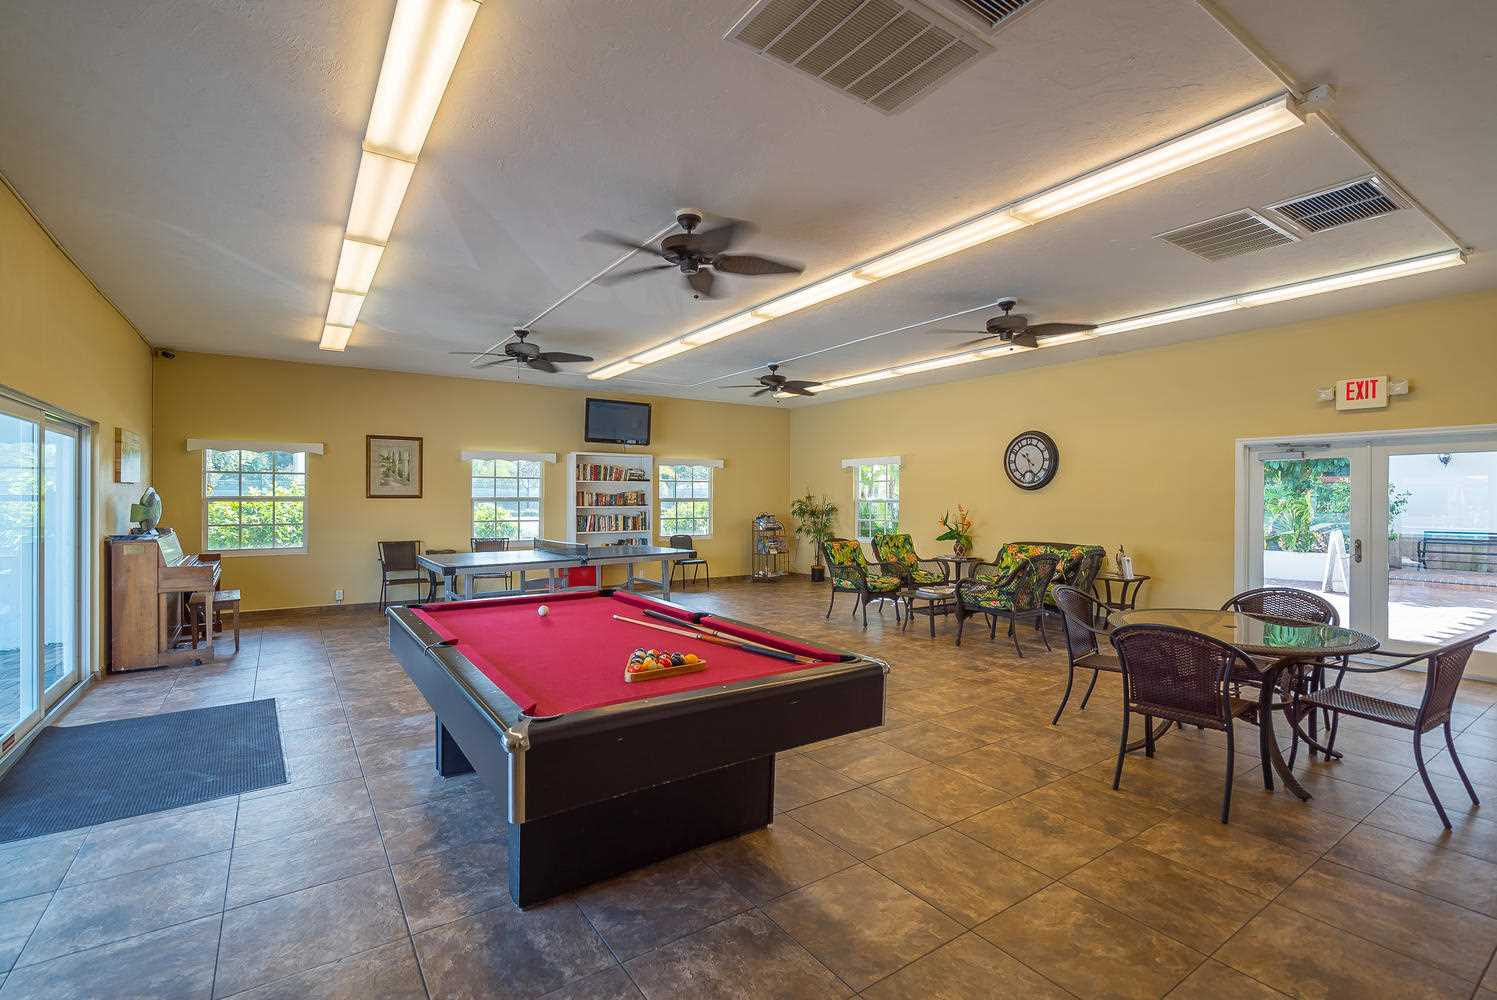 Community recreation room